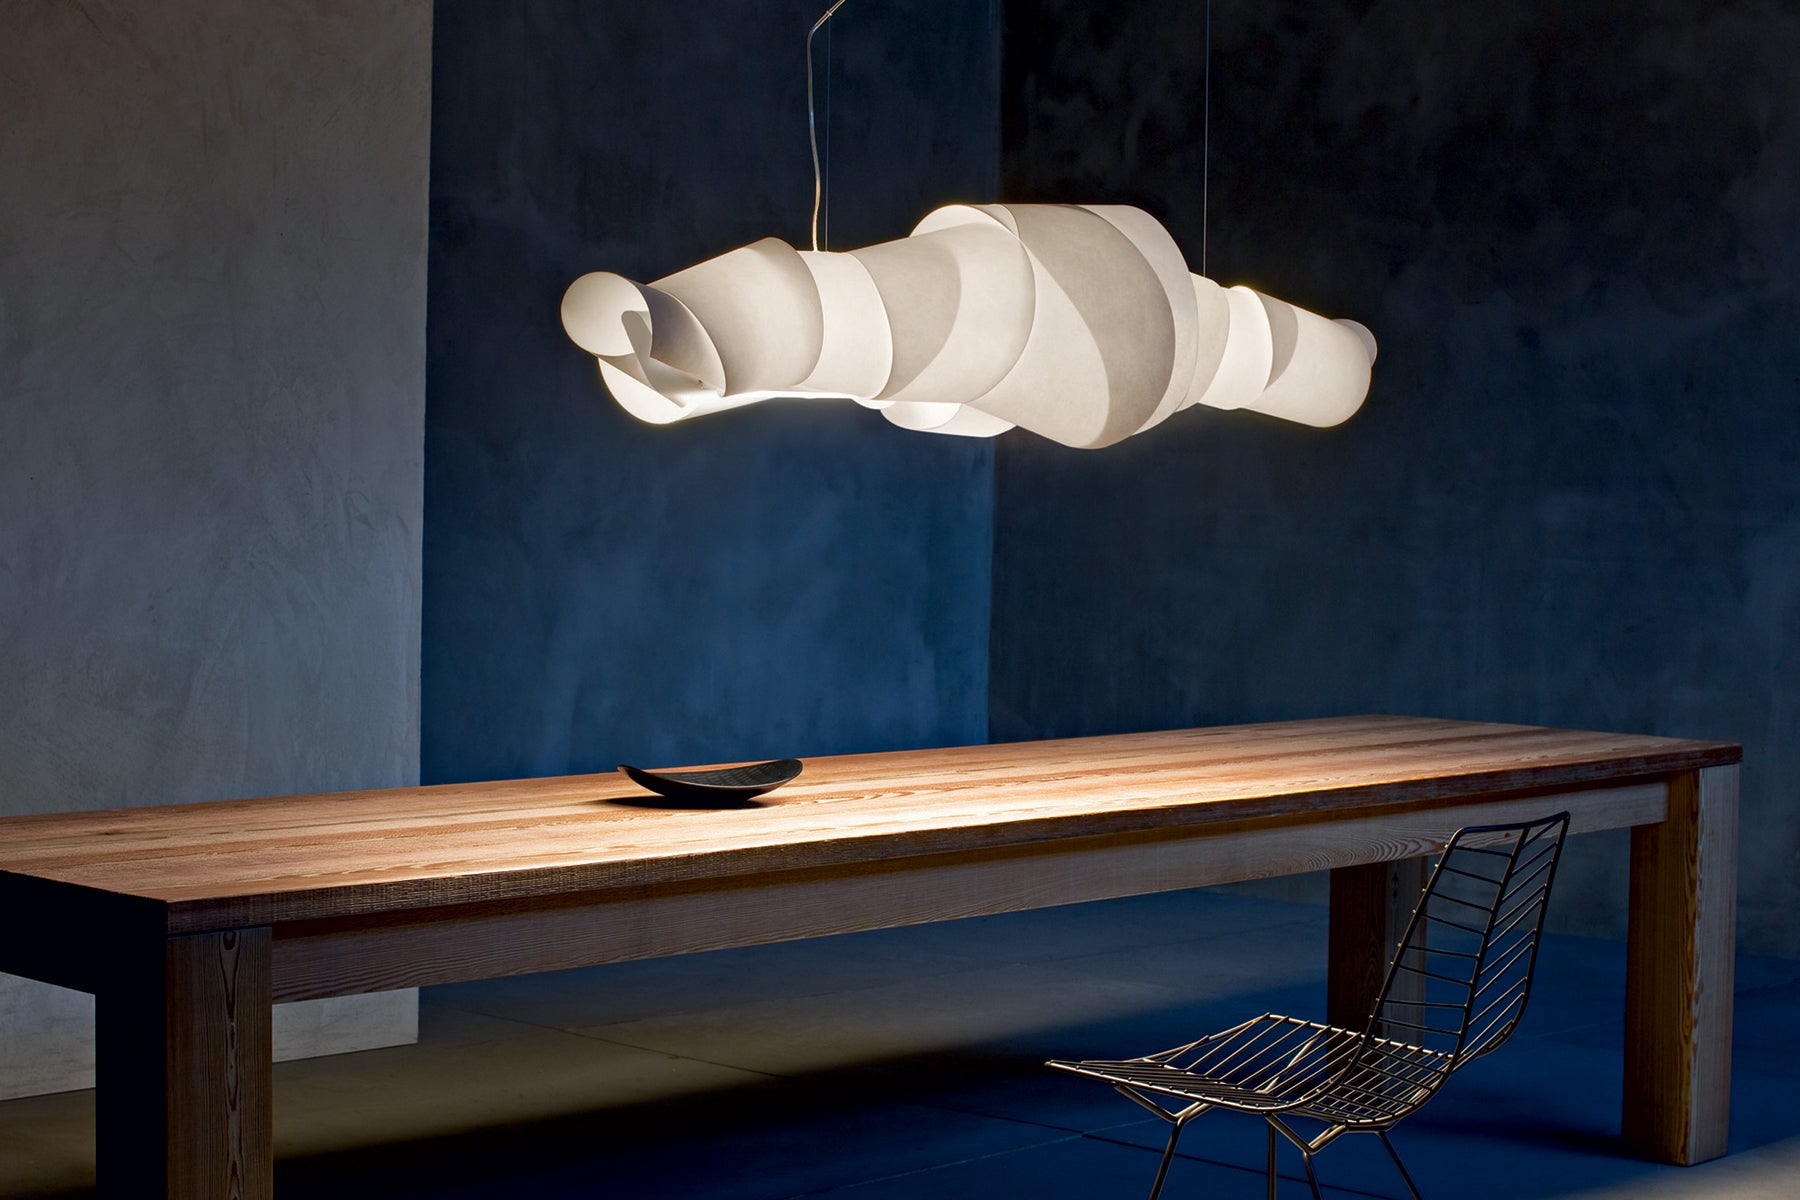 Contemporary lighting from Abitalia South Coast